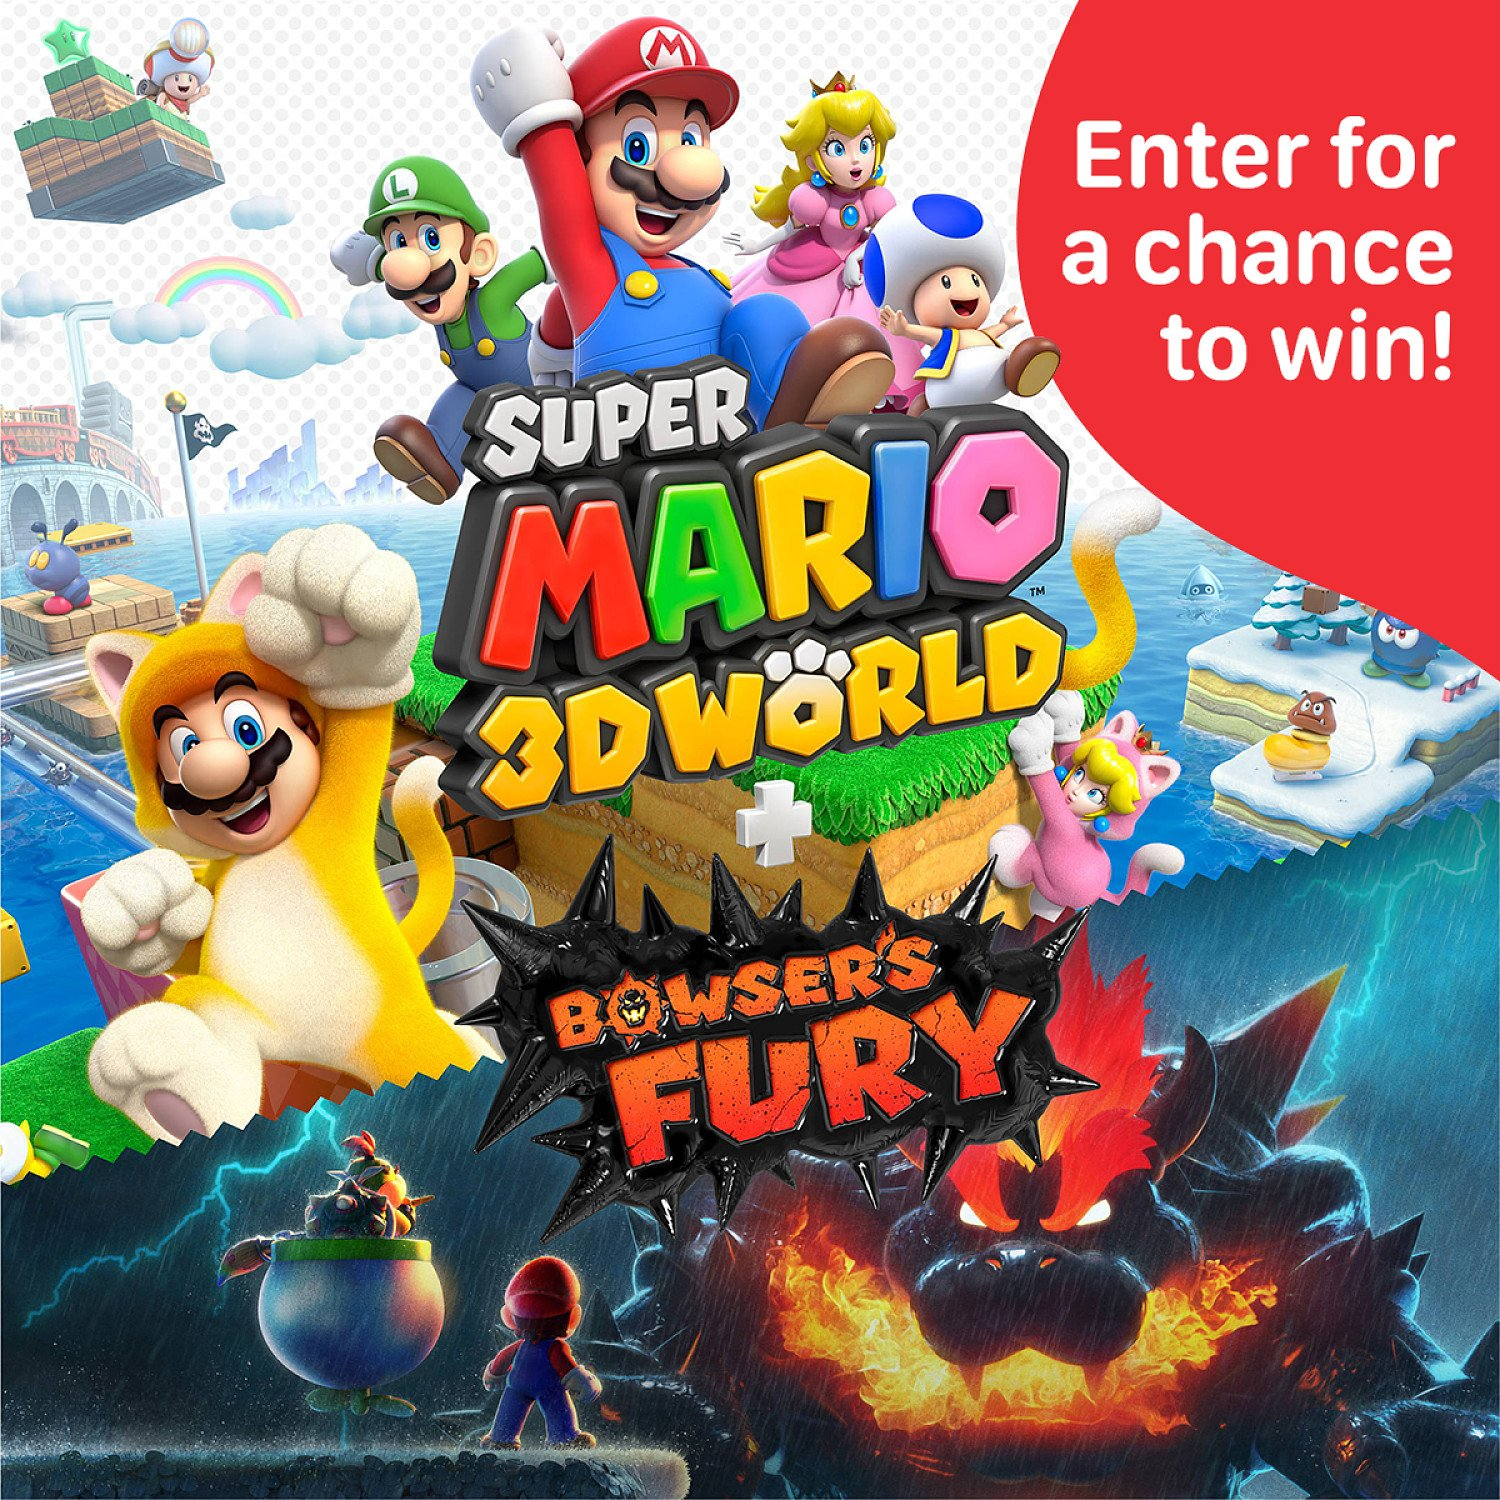 WIN a copy of Super Mario 3D World + Bowser's Fury